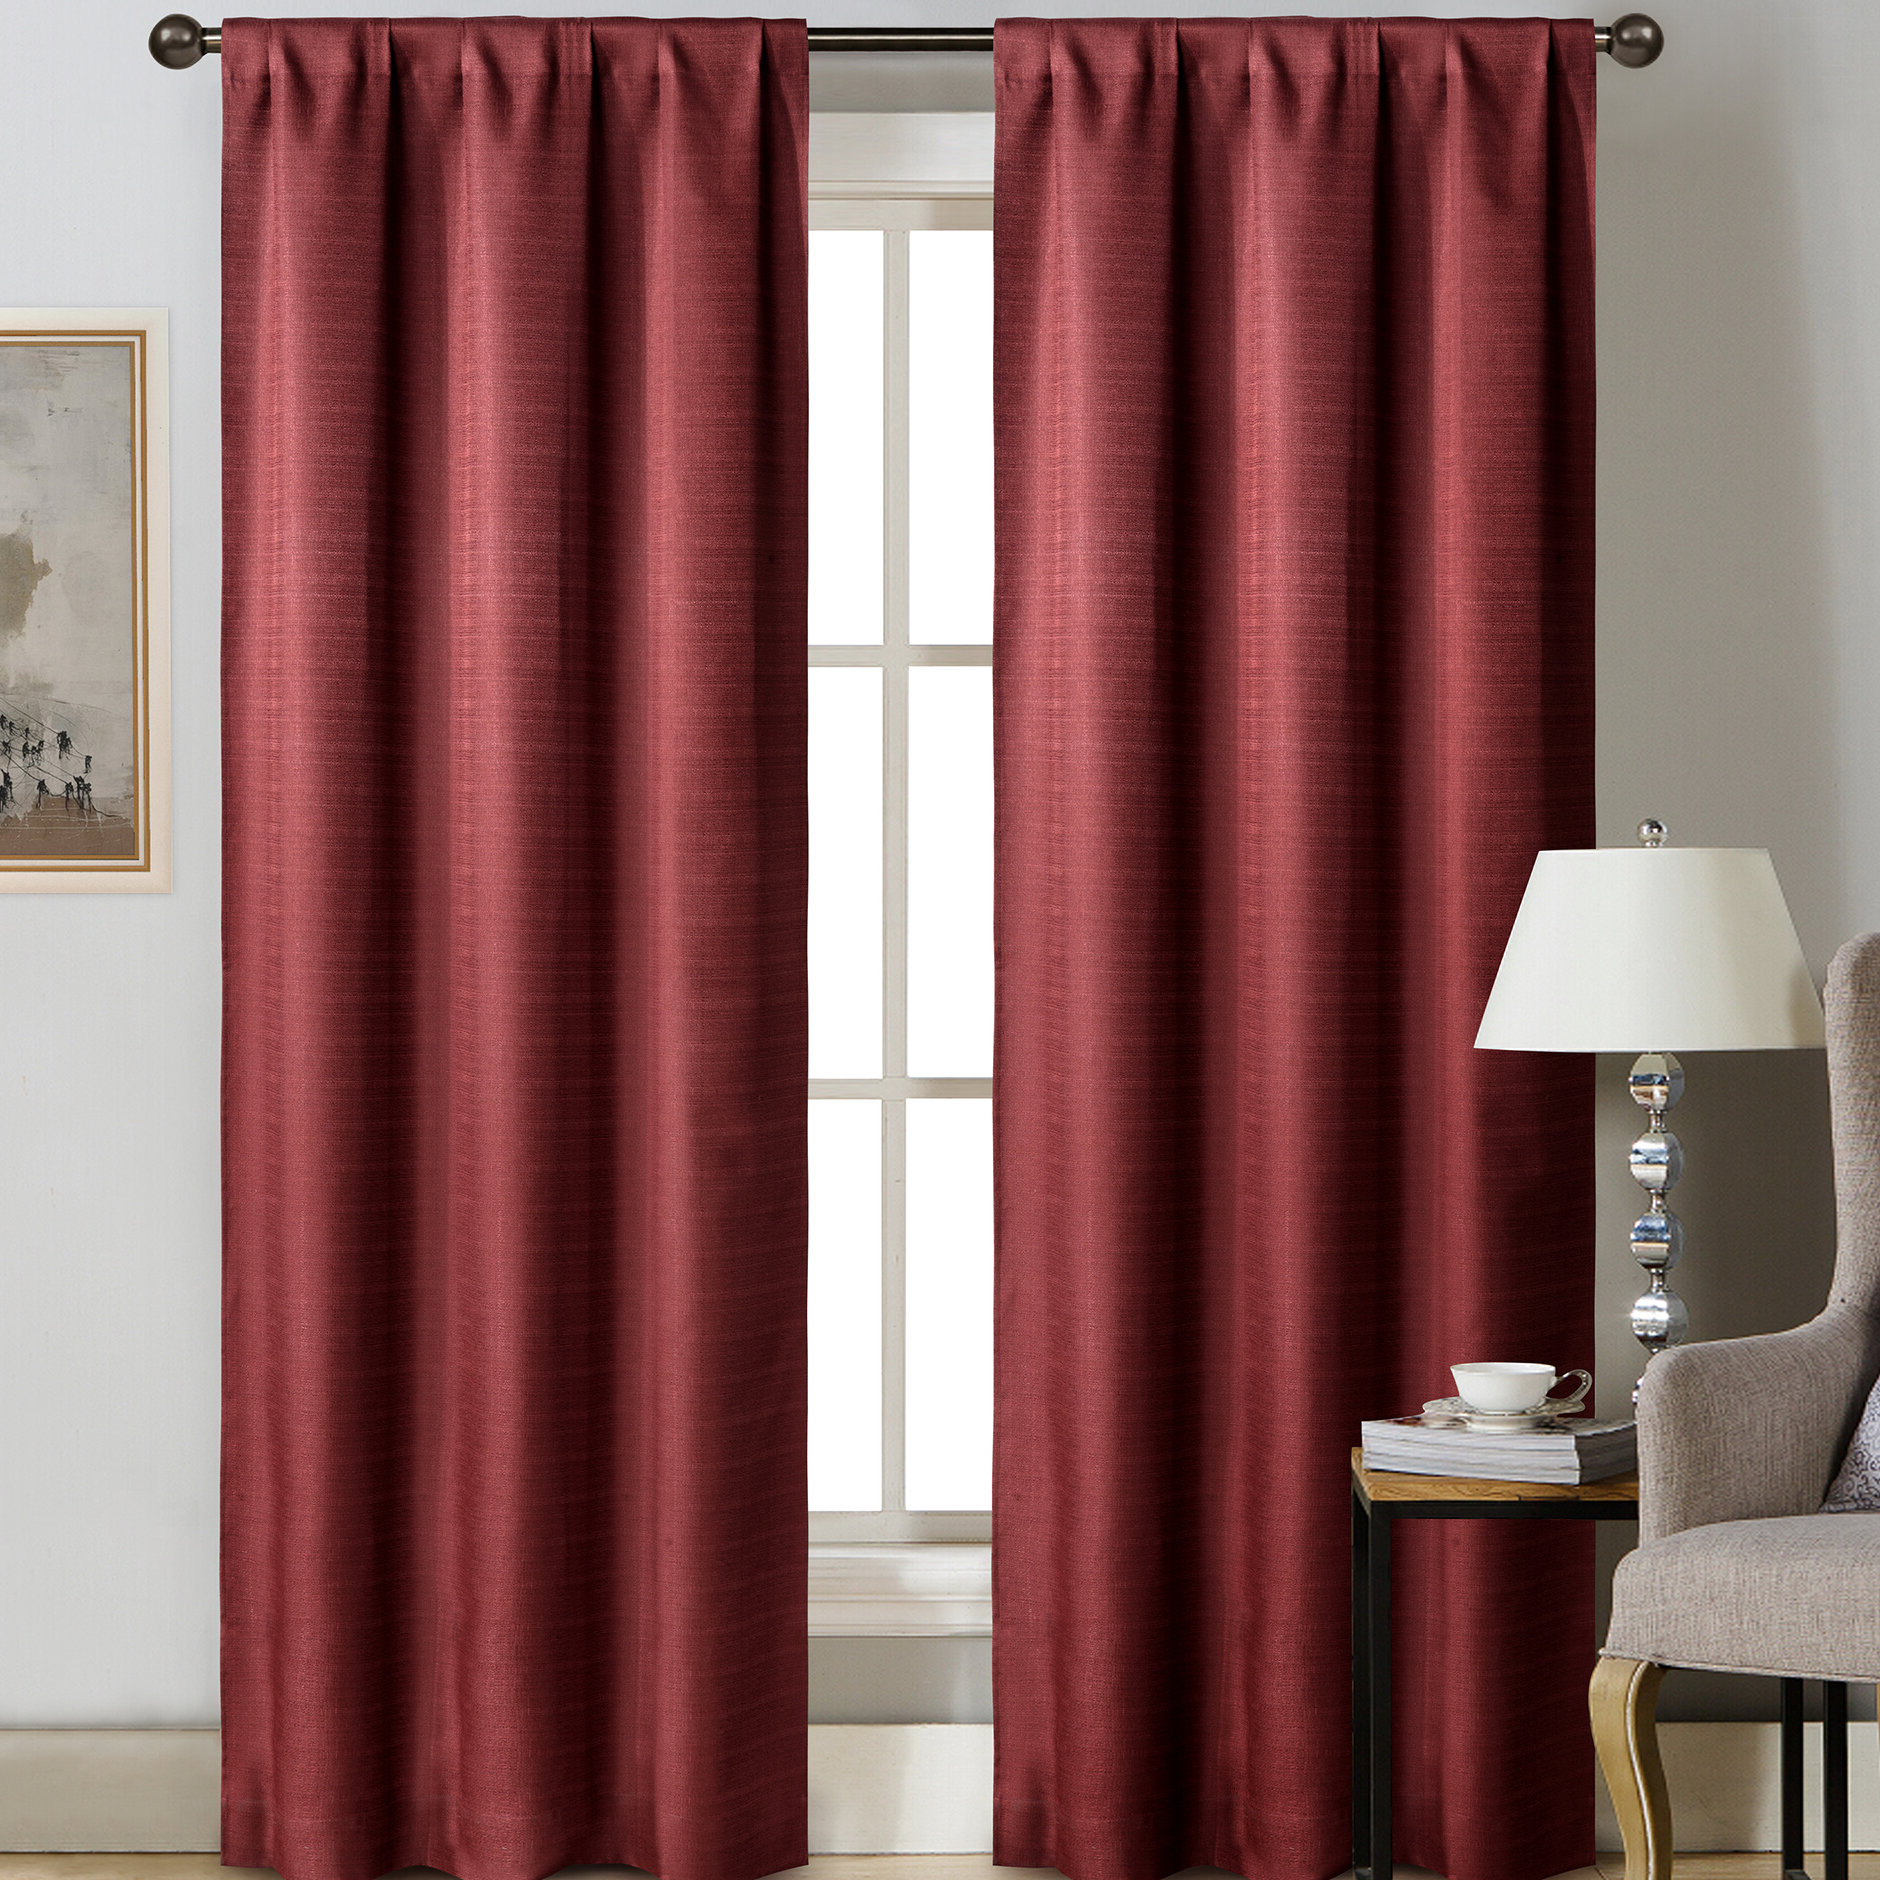 Fashionable Luxury Collection Cranston Sheer Curtain Panel Pairs Throughout Terrazas Solid Color Semi Sheer Grommet Curtain Panels (View 16 of 20)